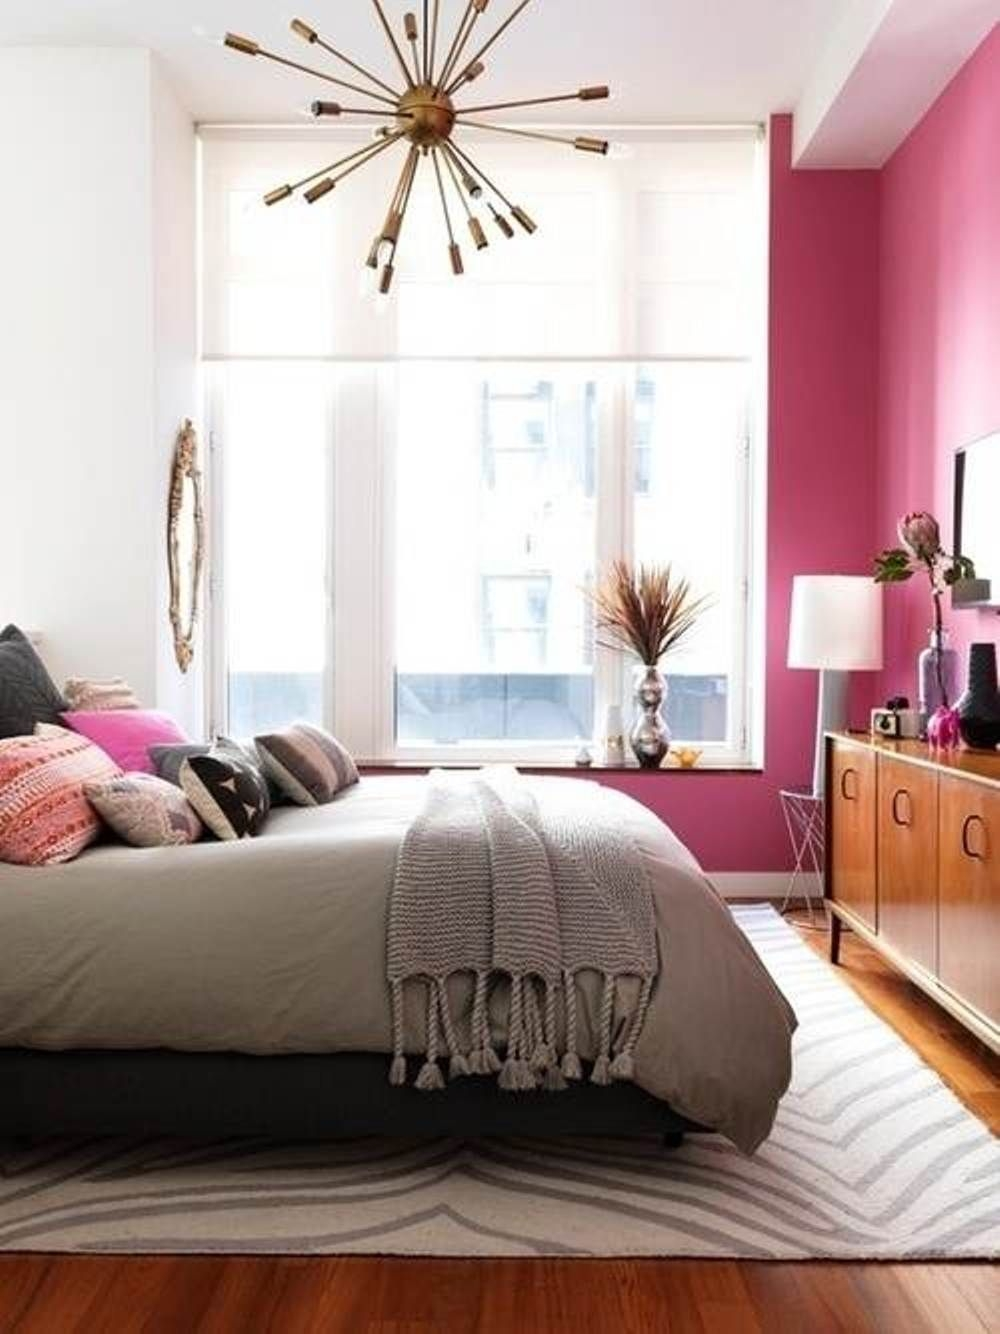 pink bedroom decorating ideas for women decorating pinterest